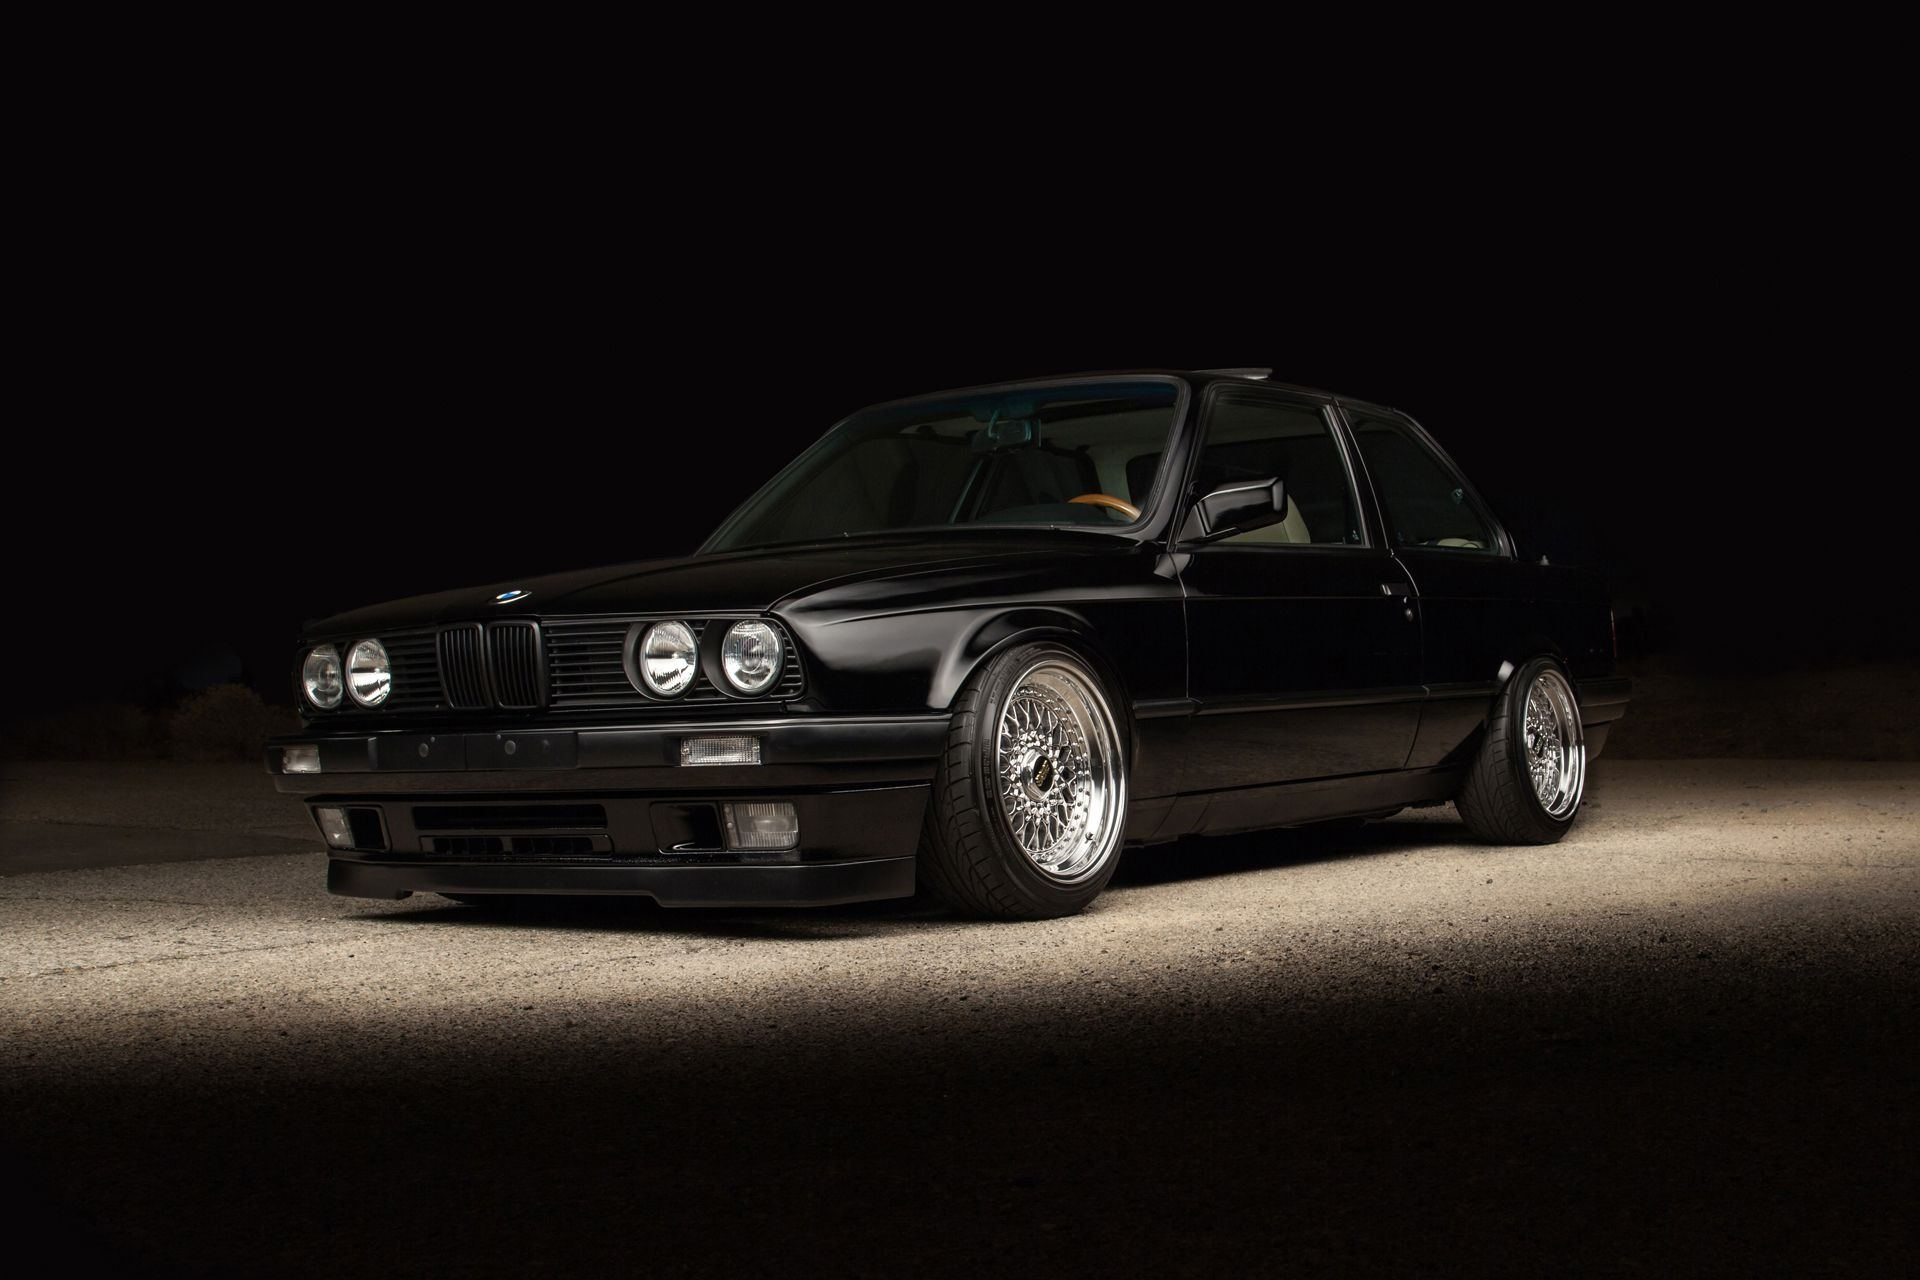 Bmw E30 Wallpapers HD | PixelsTalk.Net